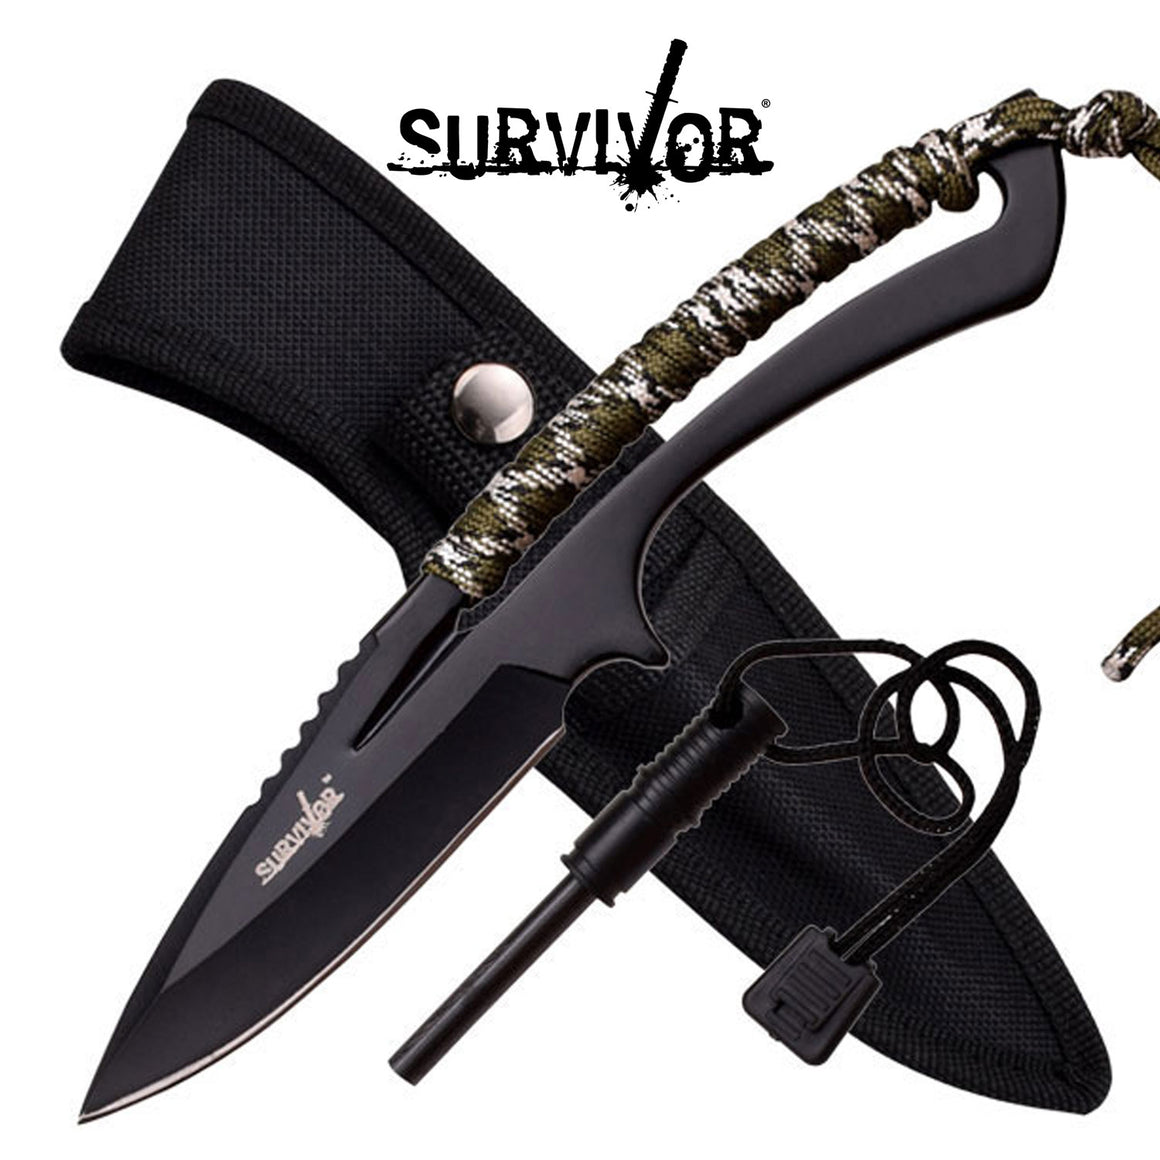 Survivor HK-767CA Fixed Blade Knife